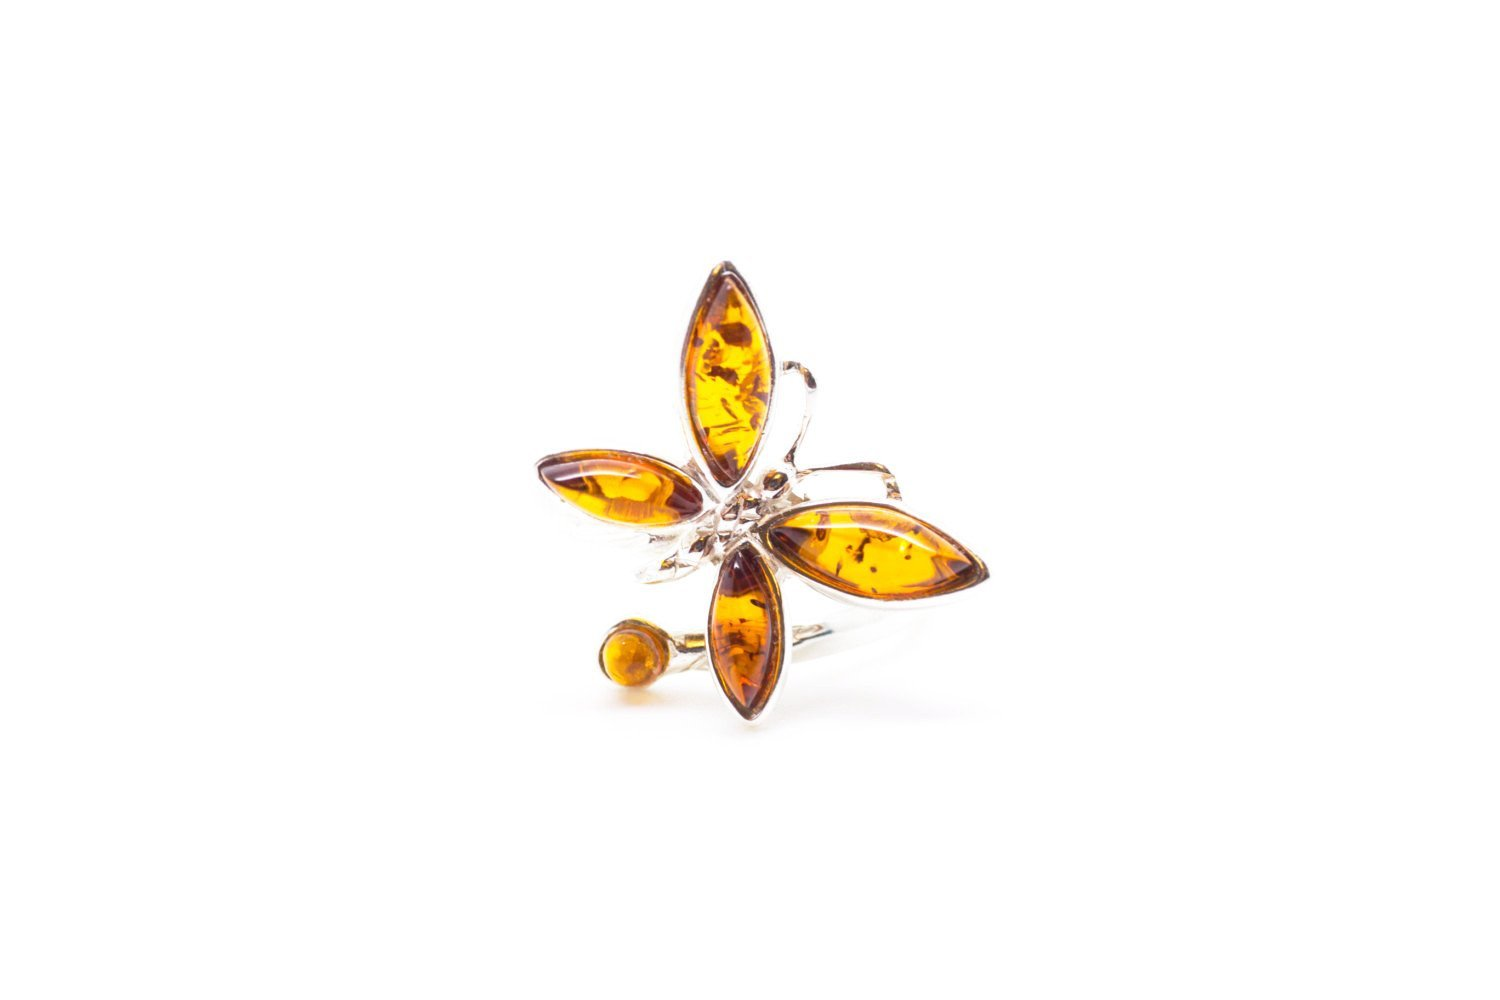 ring of rutheny rings jewelry butterfly sculpture image product